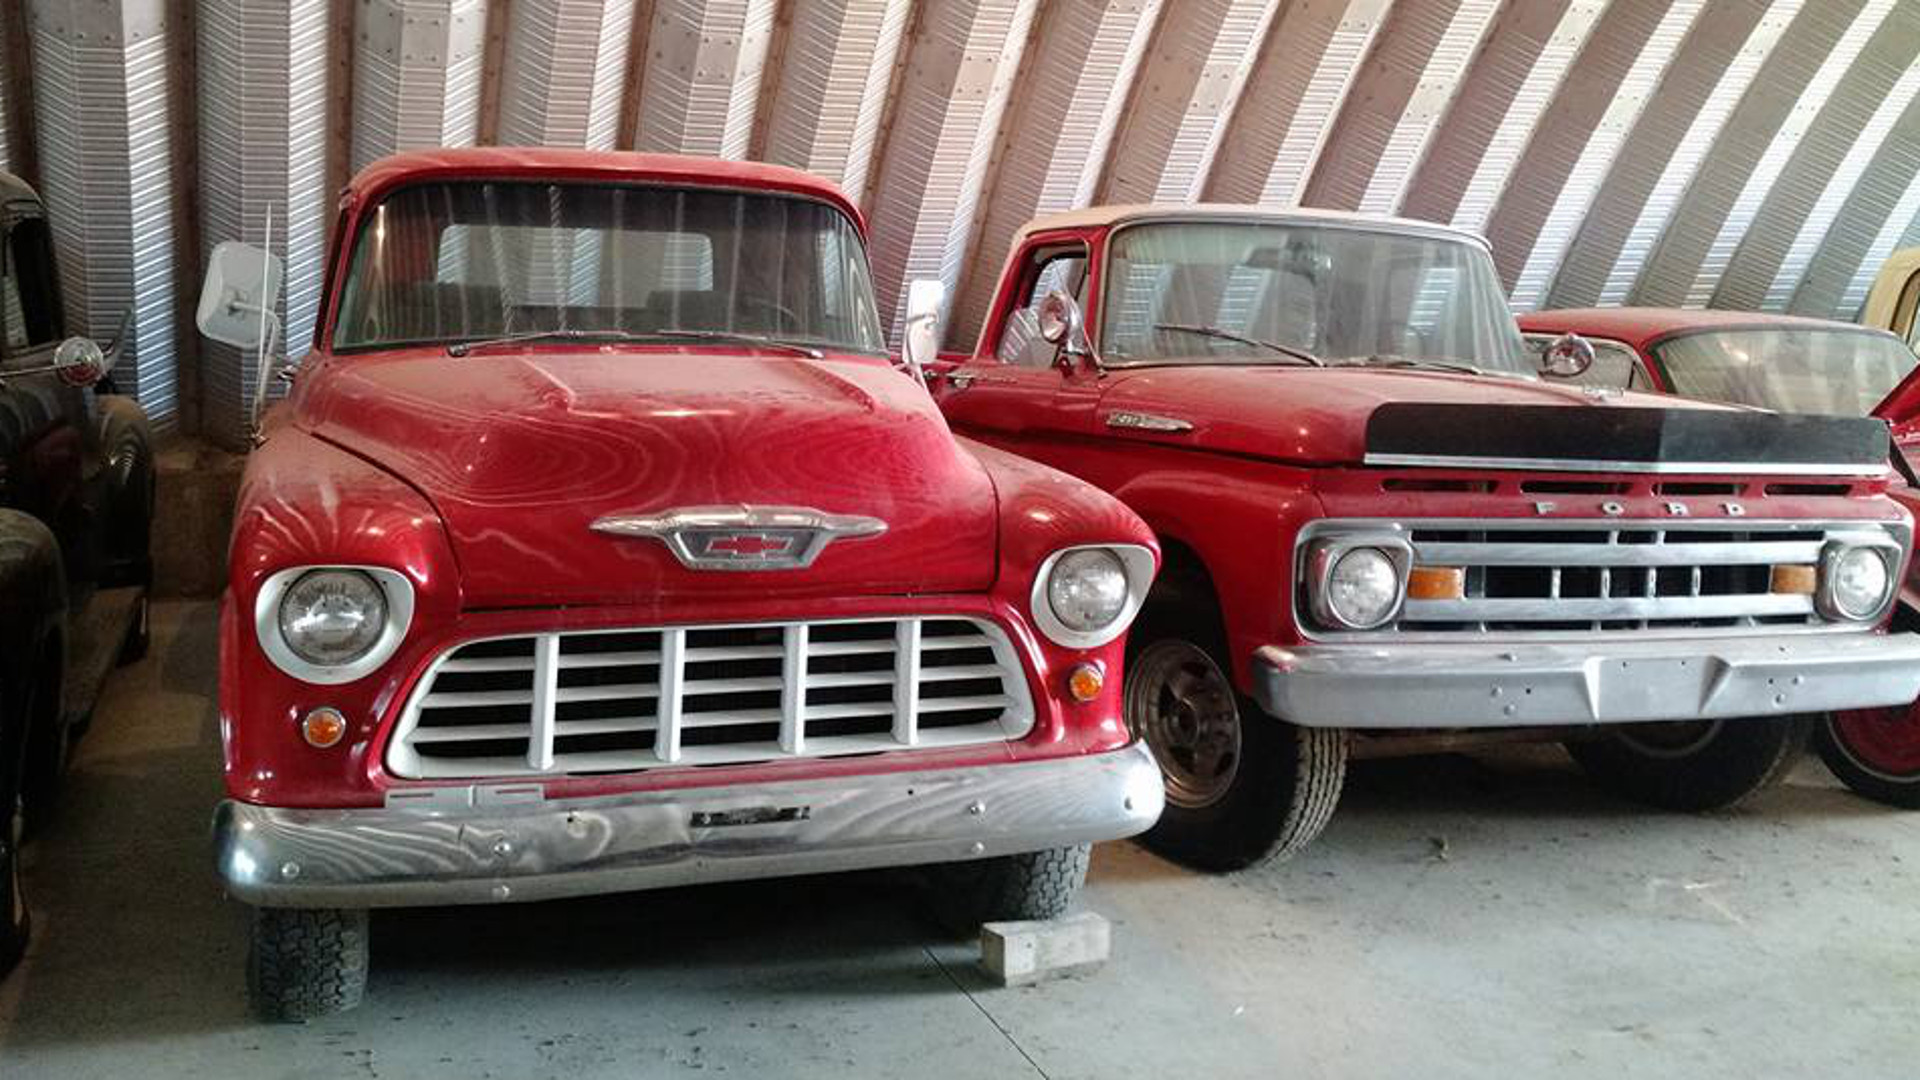 Idaho Farmer s Jaw Dropping 80 Car Collection of Classics Heading to